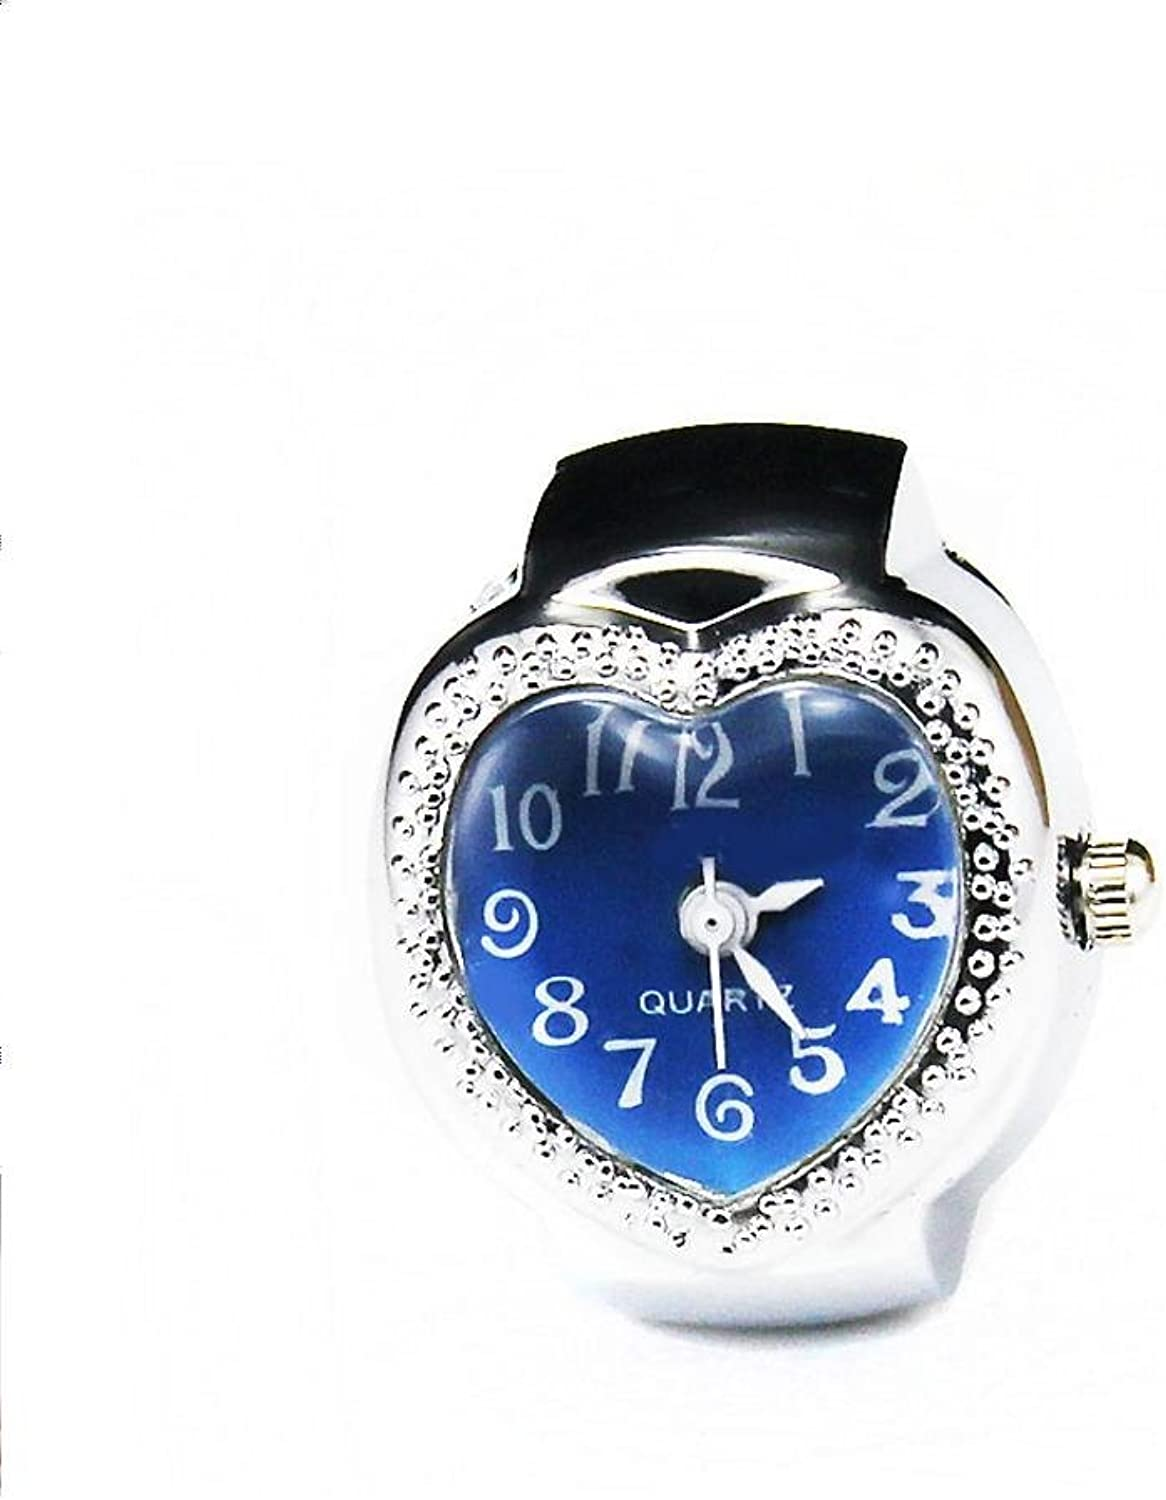 XM Table retro rings watches ladies quartz watch ring finger girls female form